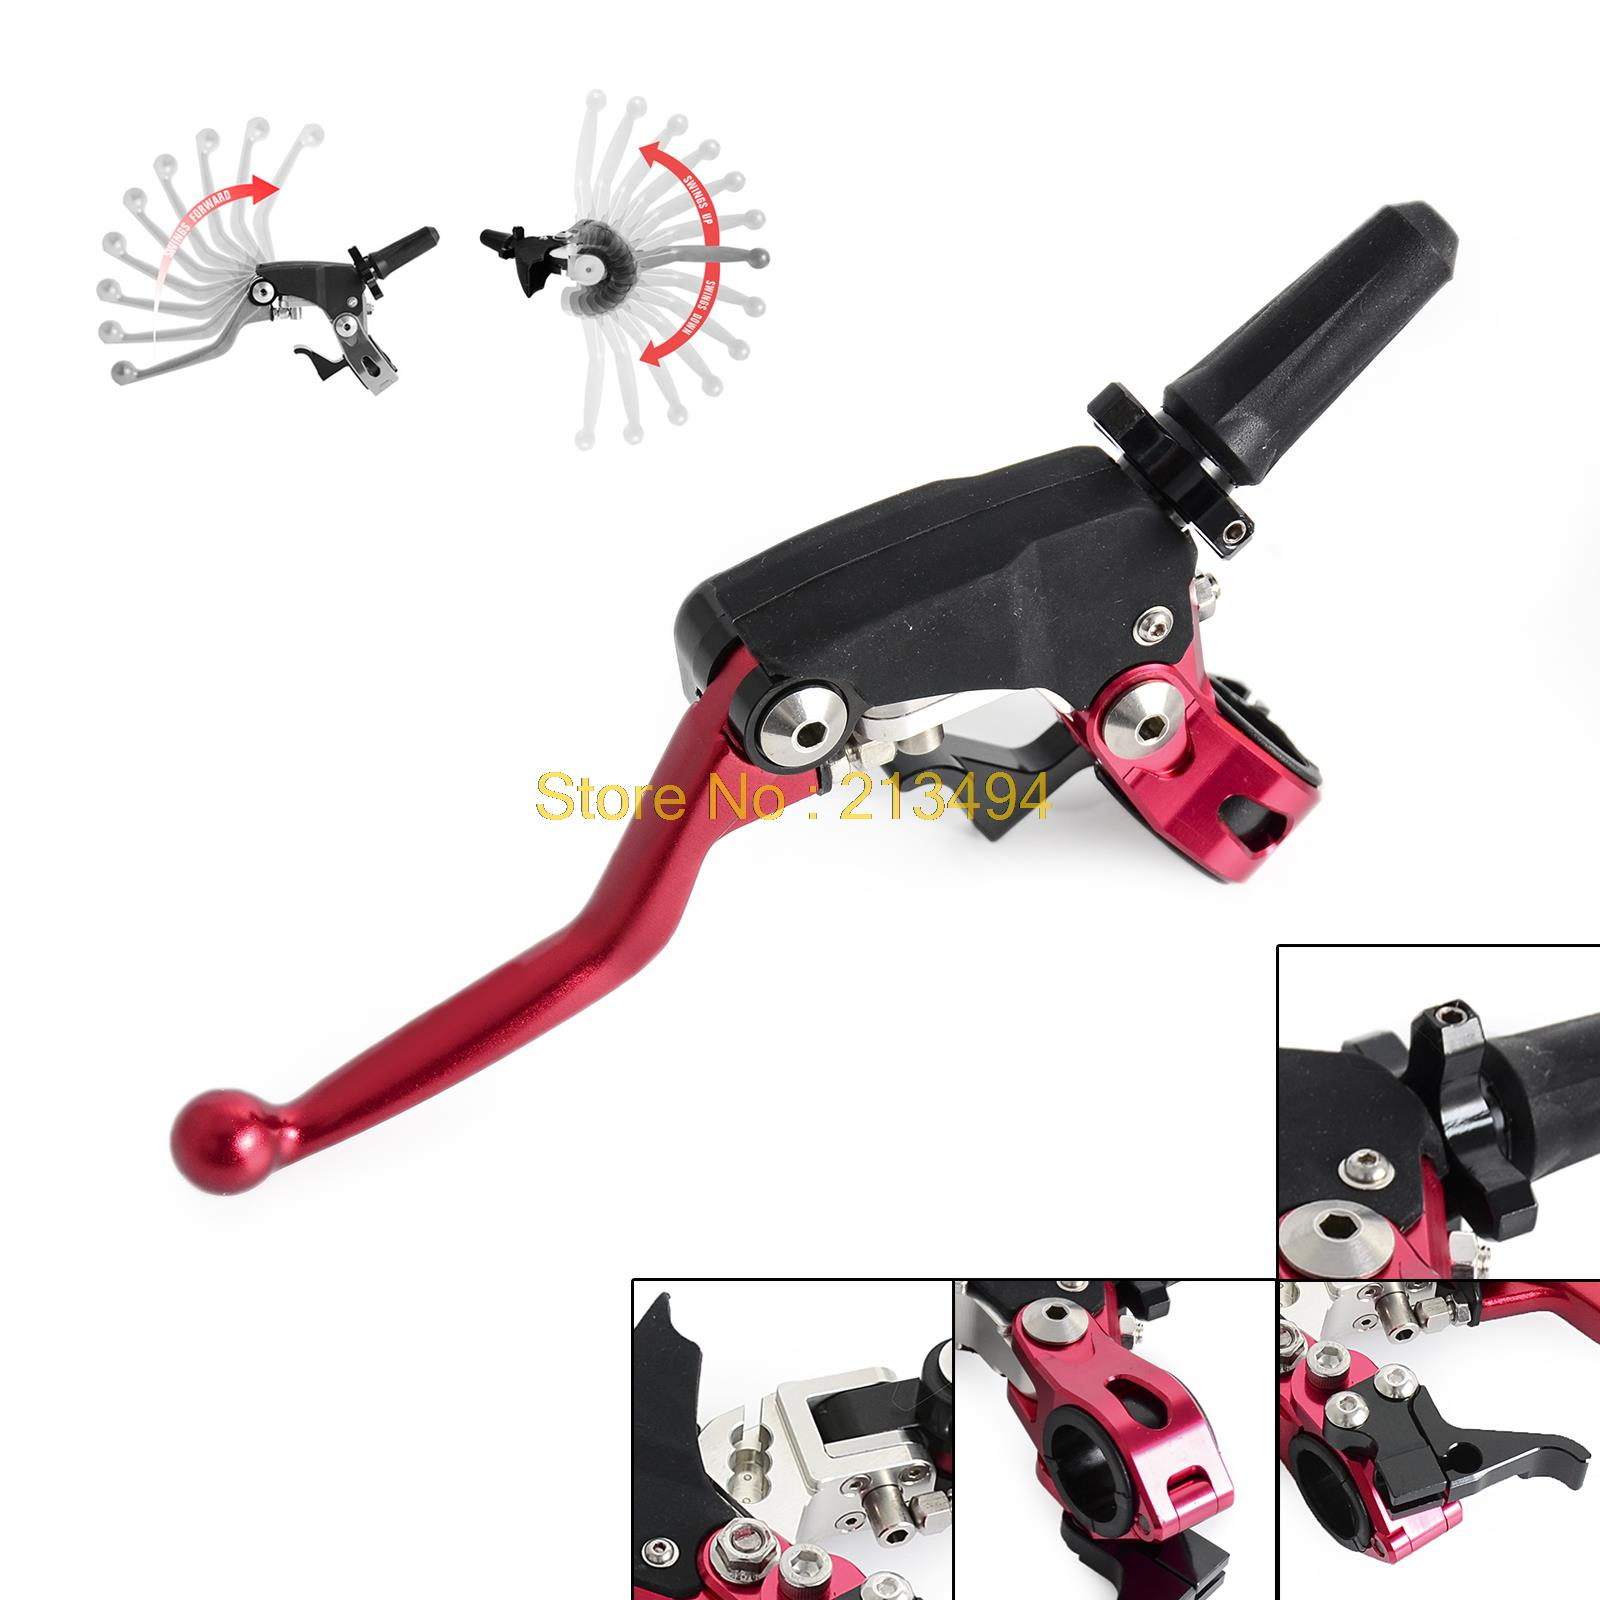 Forged Dirt Bikes Folding Clutch Lever Assembly Perch w/ Hot Start Lever For Honda CR CRF XL XR 125 150 250 400 450 650 for honda crf 250r 450r 2004 2006 crf 250x 450x 2004 2015 red motorcycle dirt bike off road cnc pivot brake clutch lever